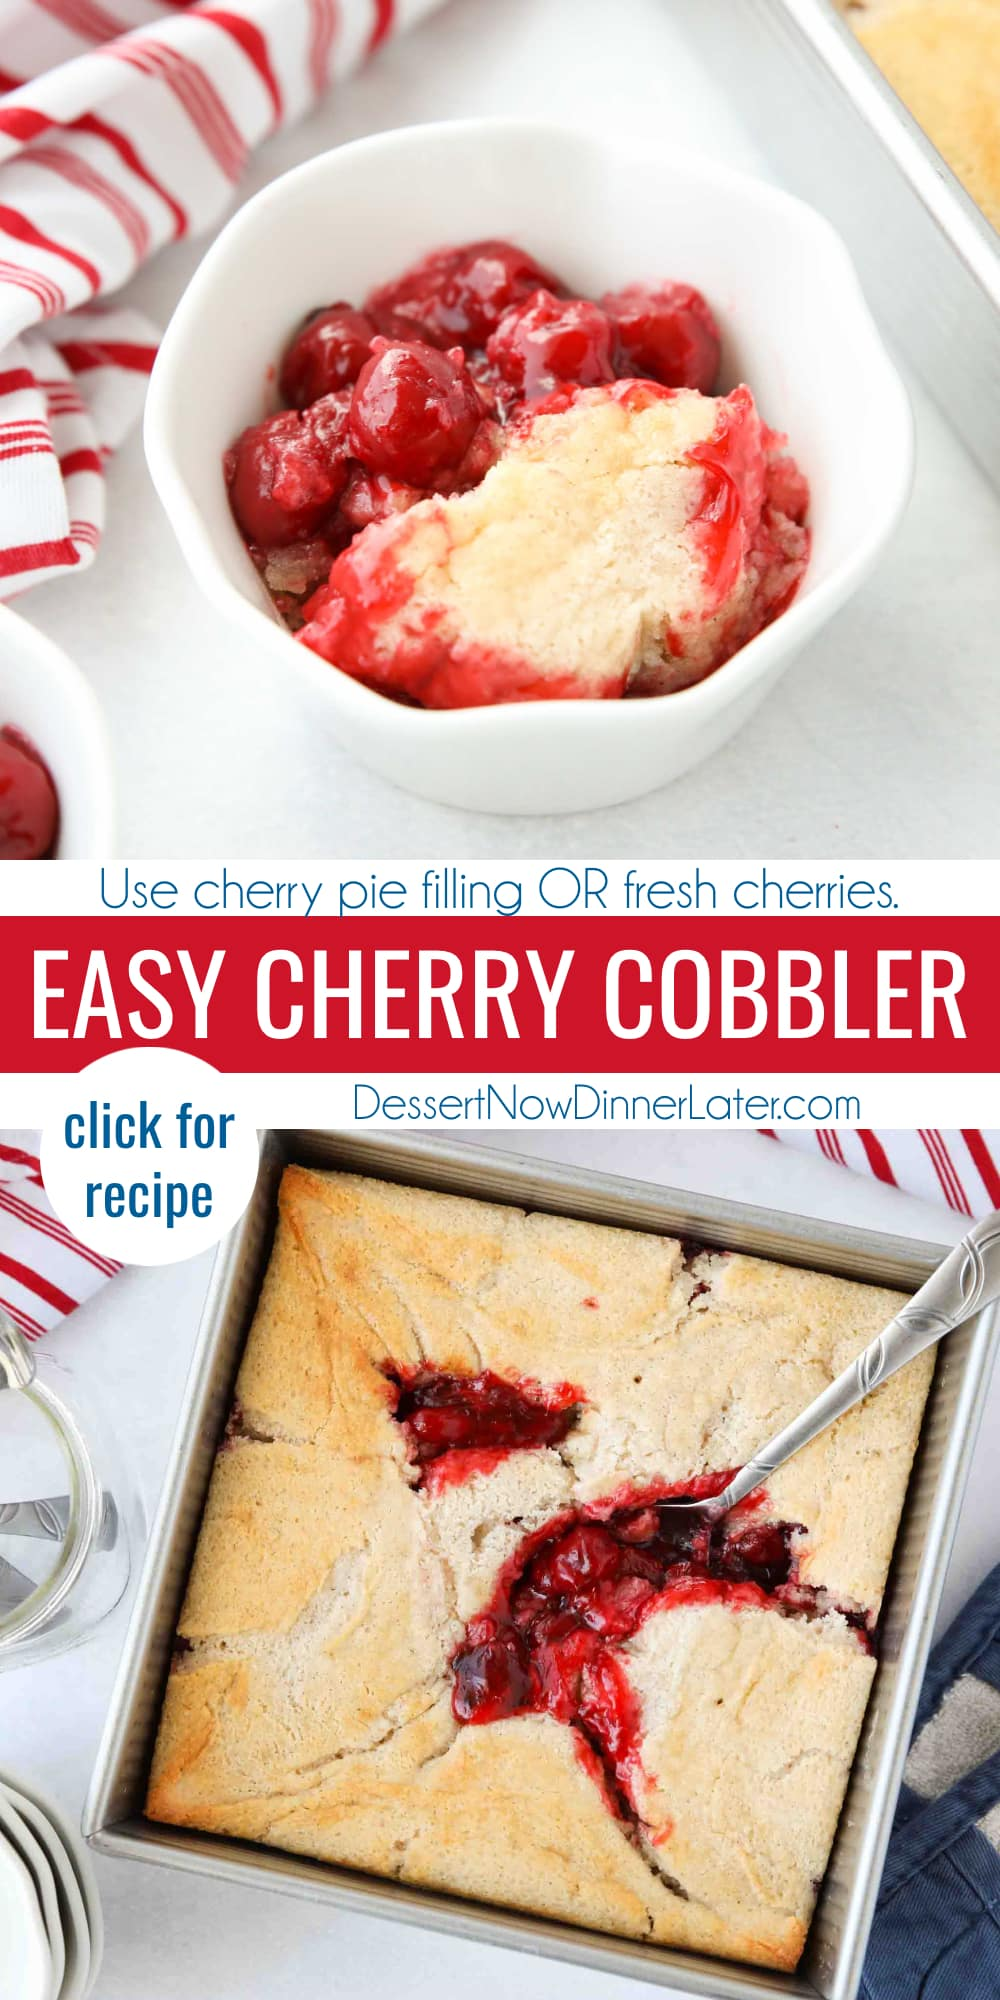 Pinterest collage image for Easy Cherry Cobbler with two images and text in the center.